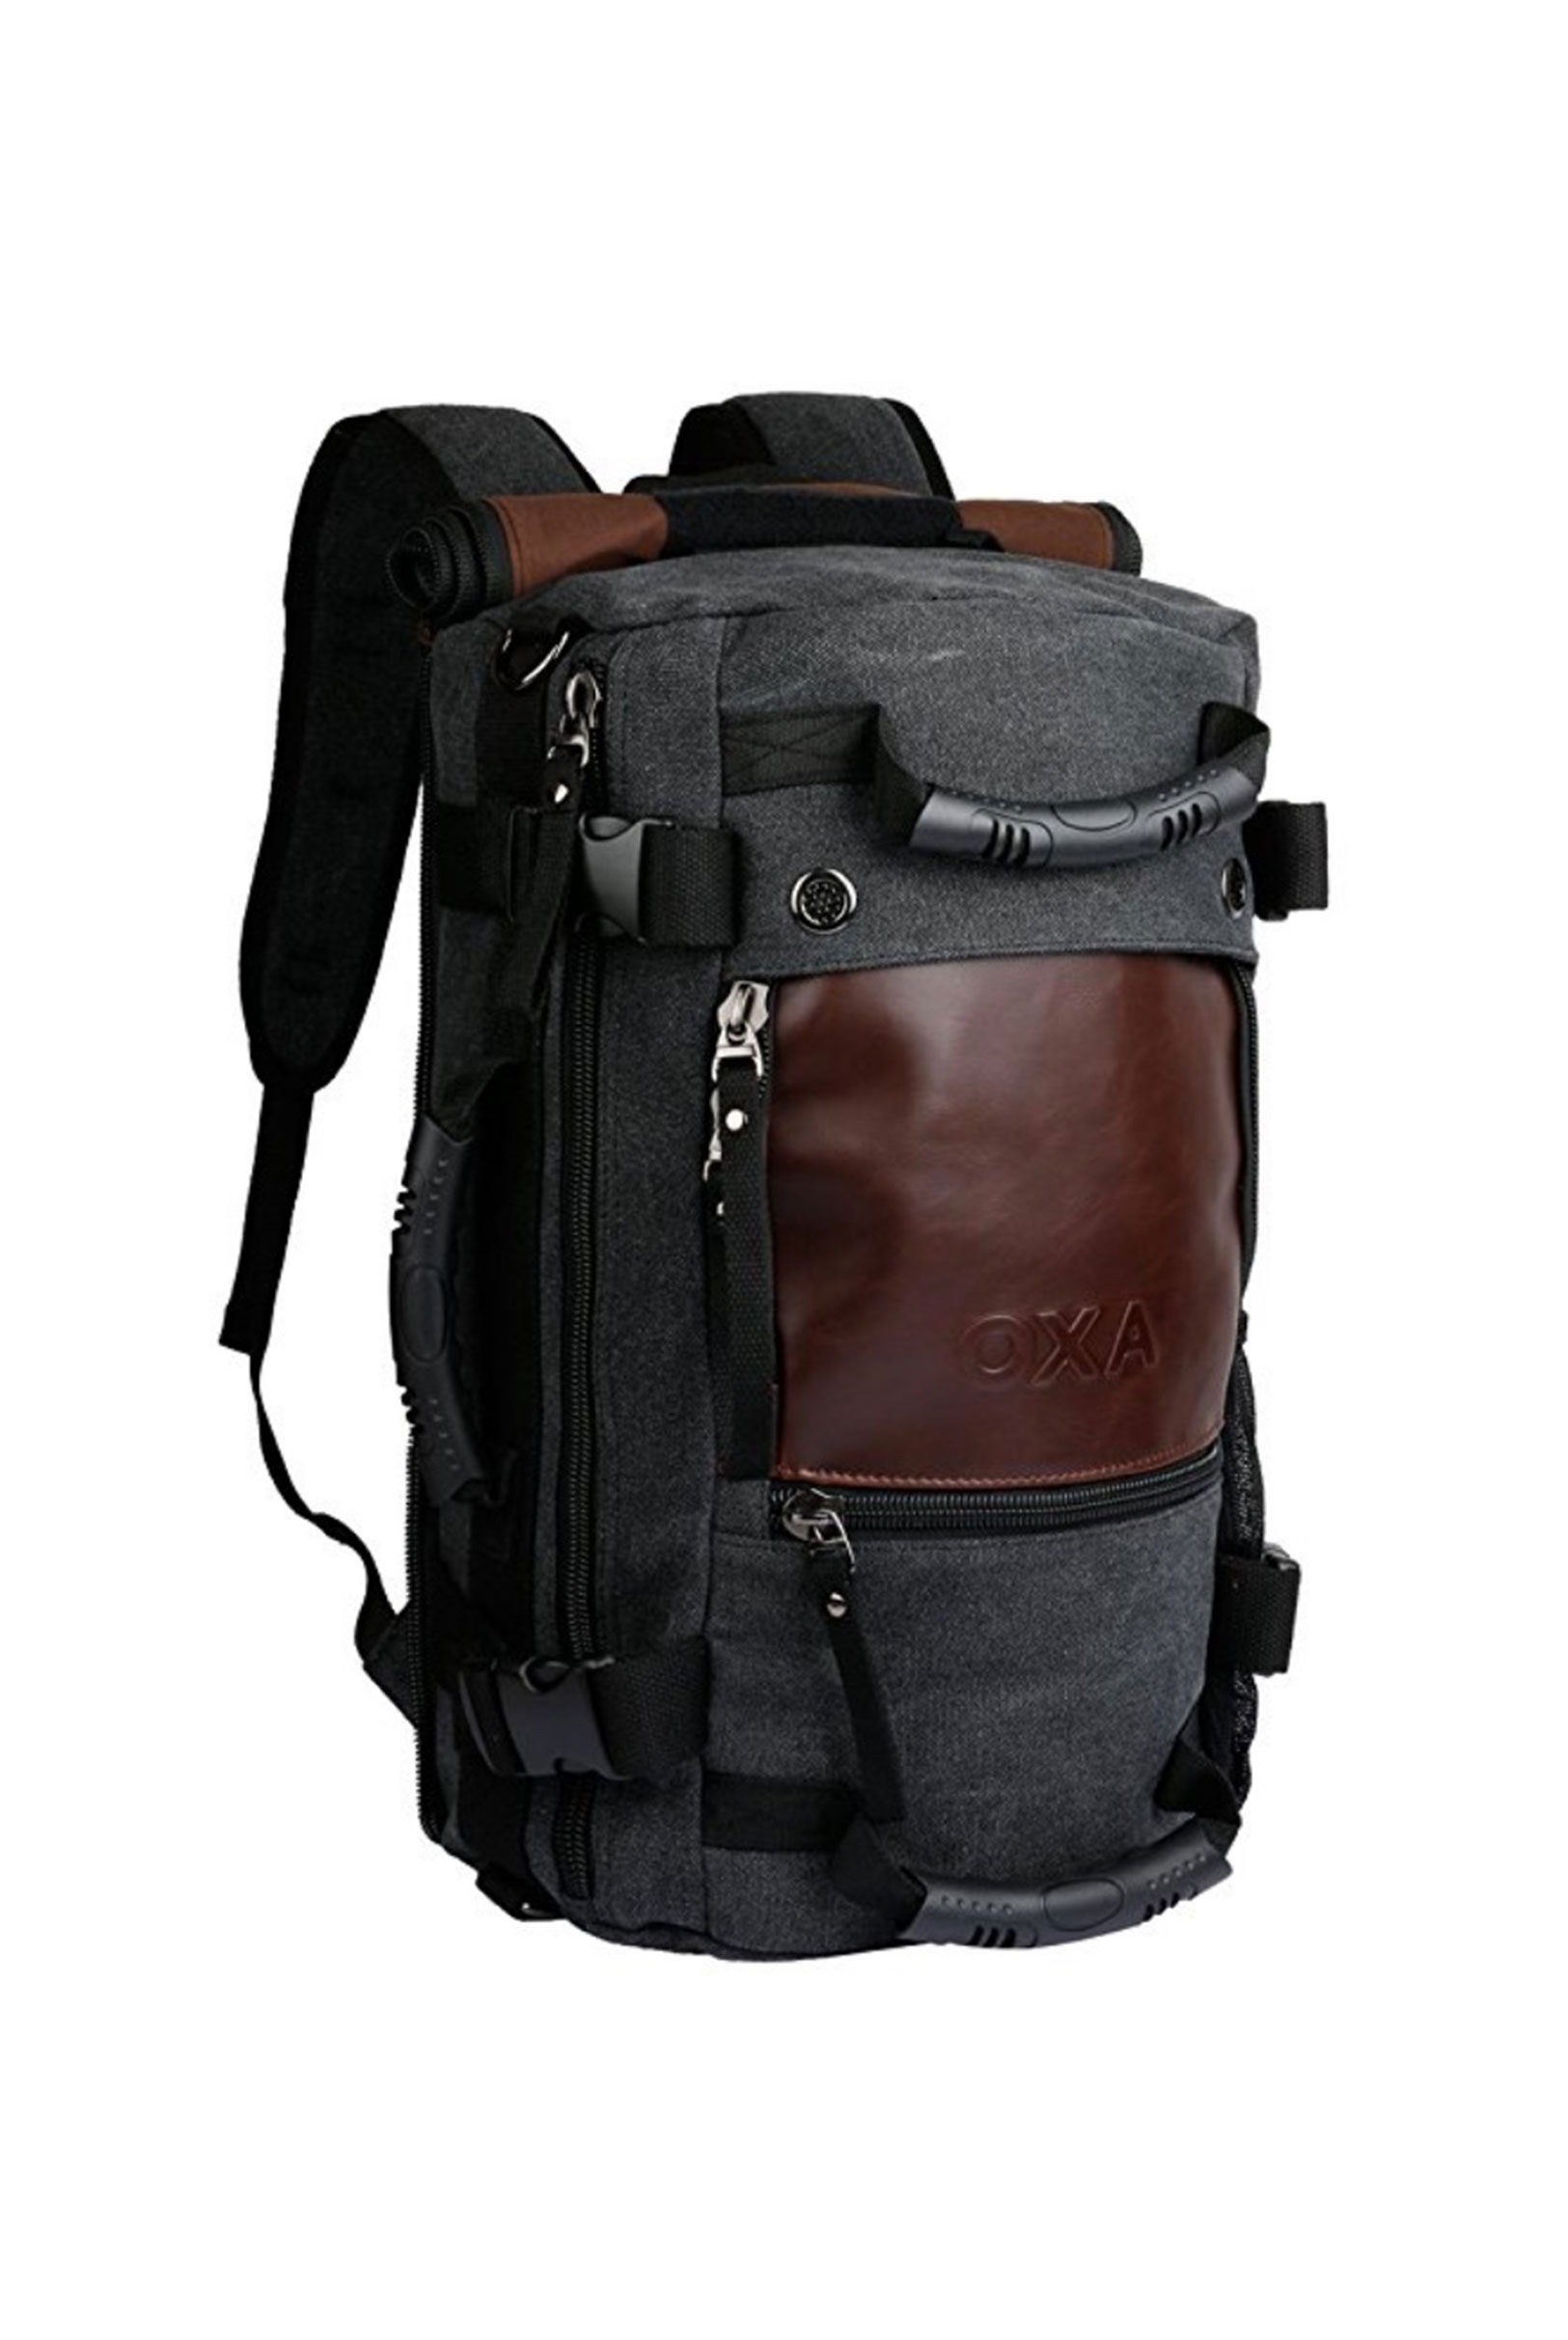 Hiking-Camping-Backpack.jpg